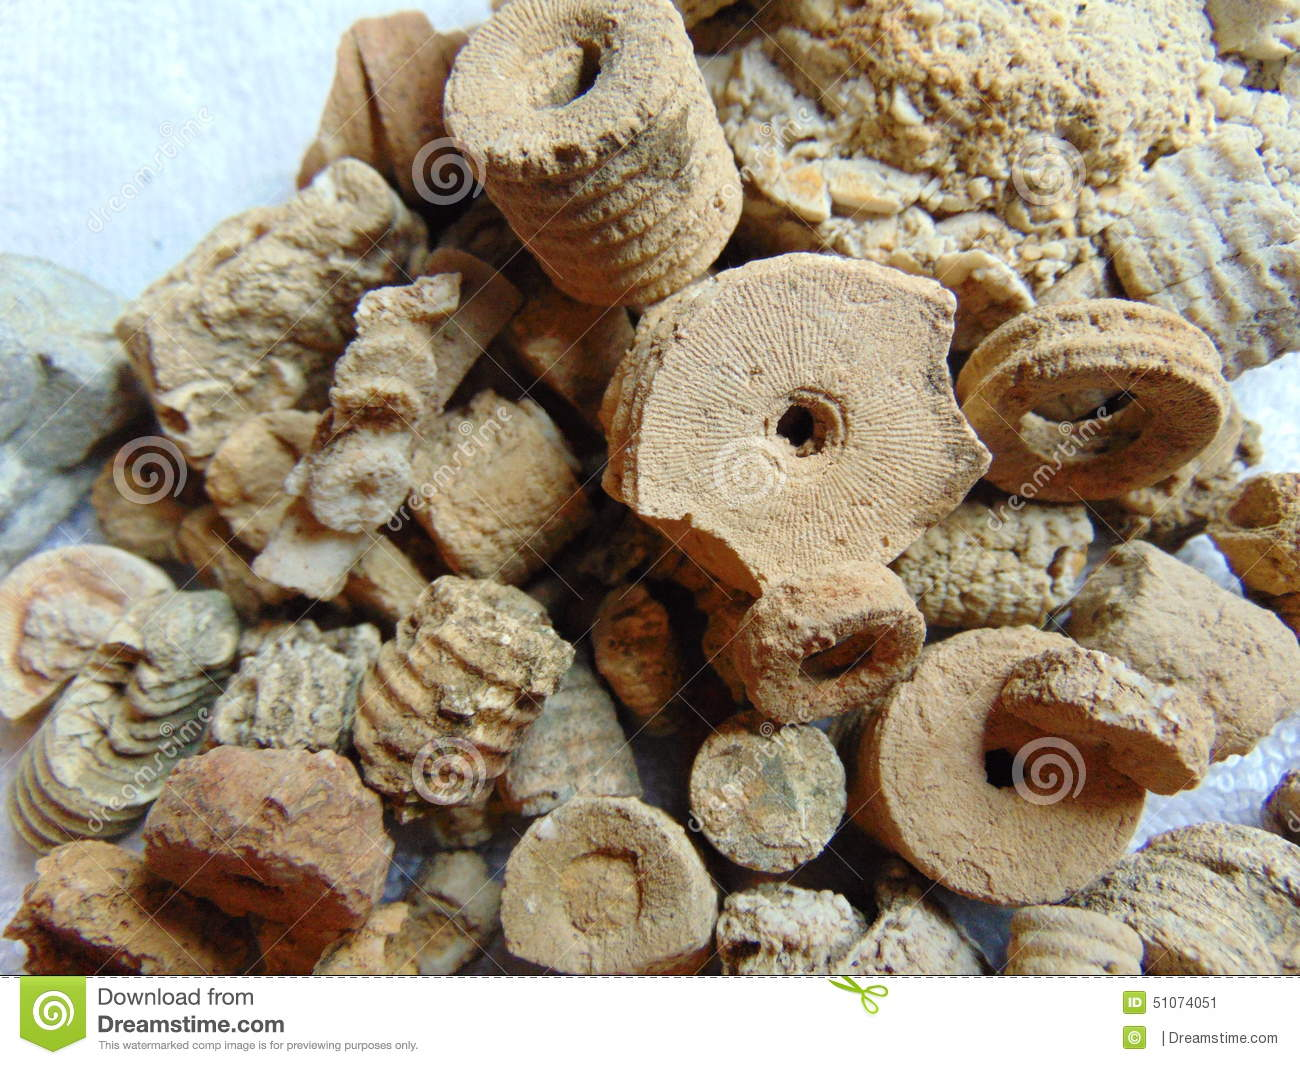 Crinoid fossils stock image. Image of background, pieces ...